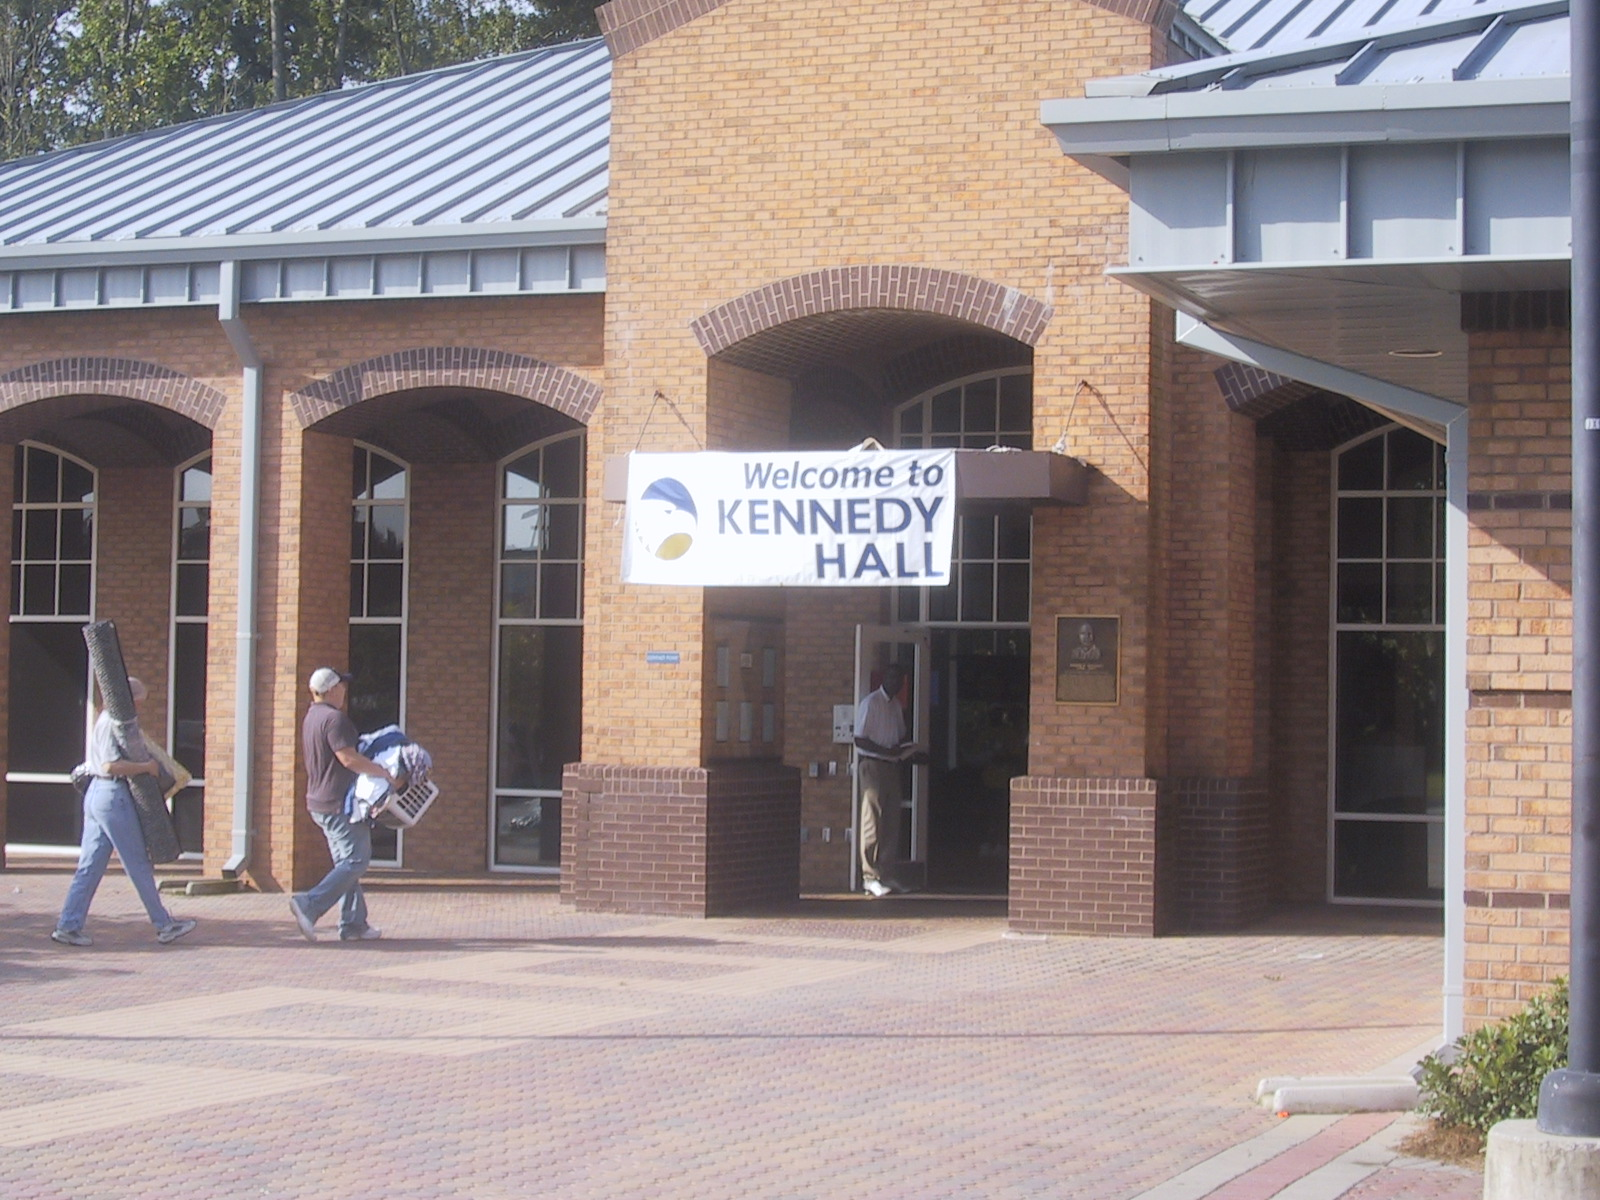 Kennedy Hall Building